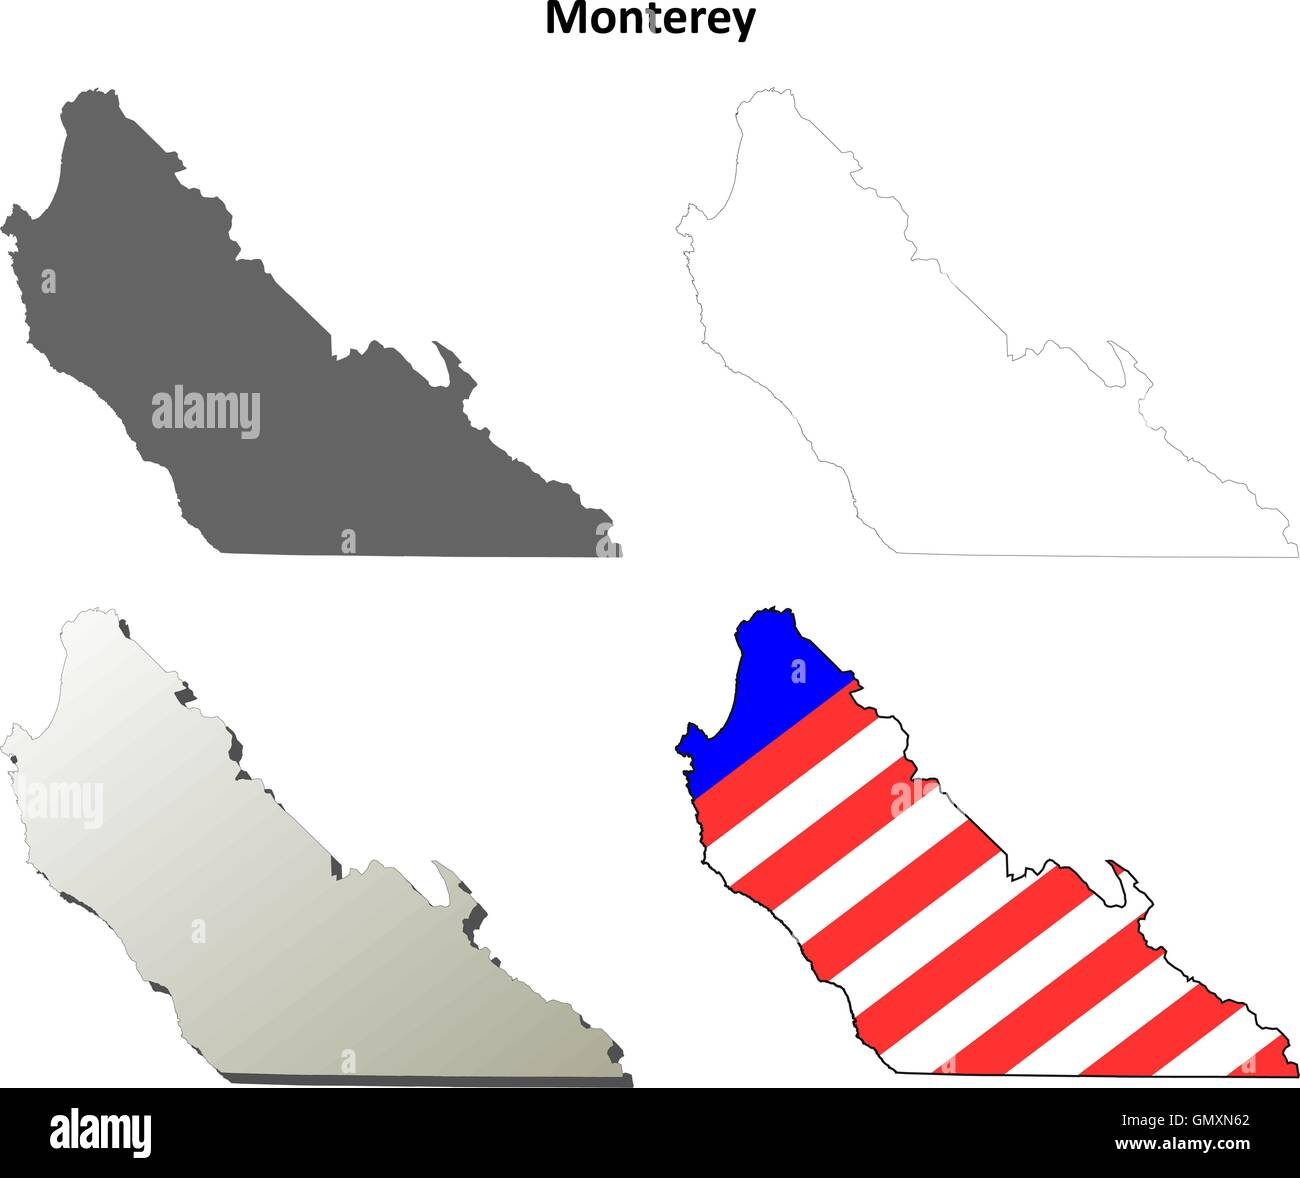 Monterey County California Map.Monterey County California Outline Map Set Stock Vector Art